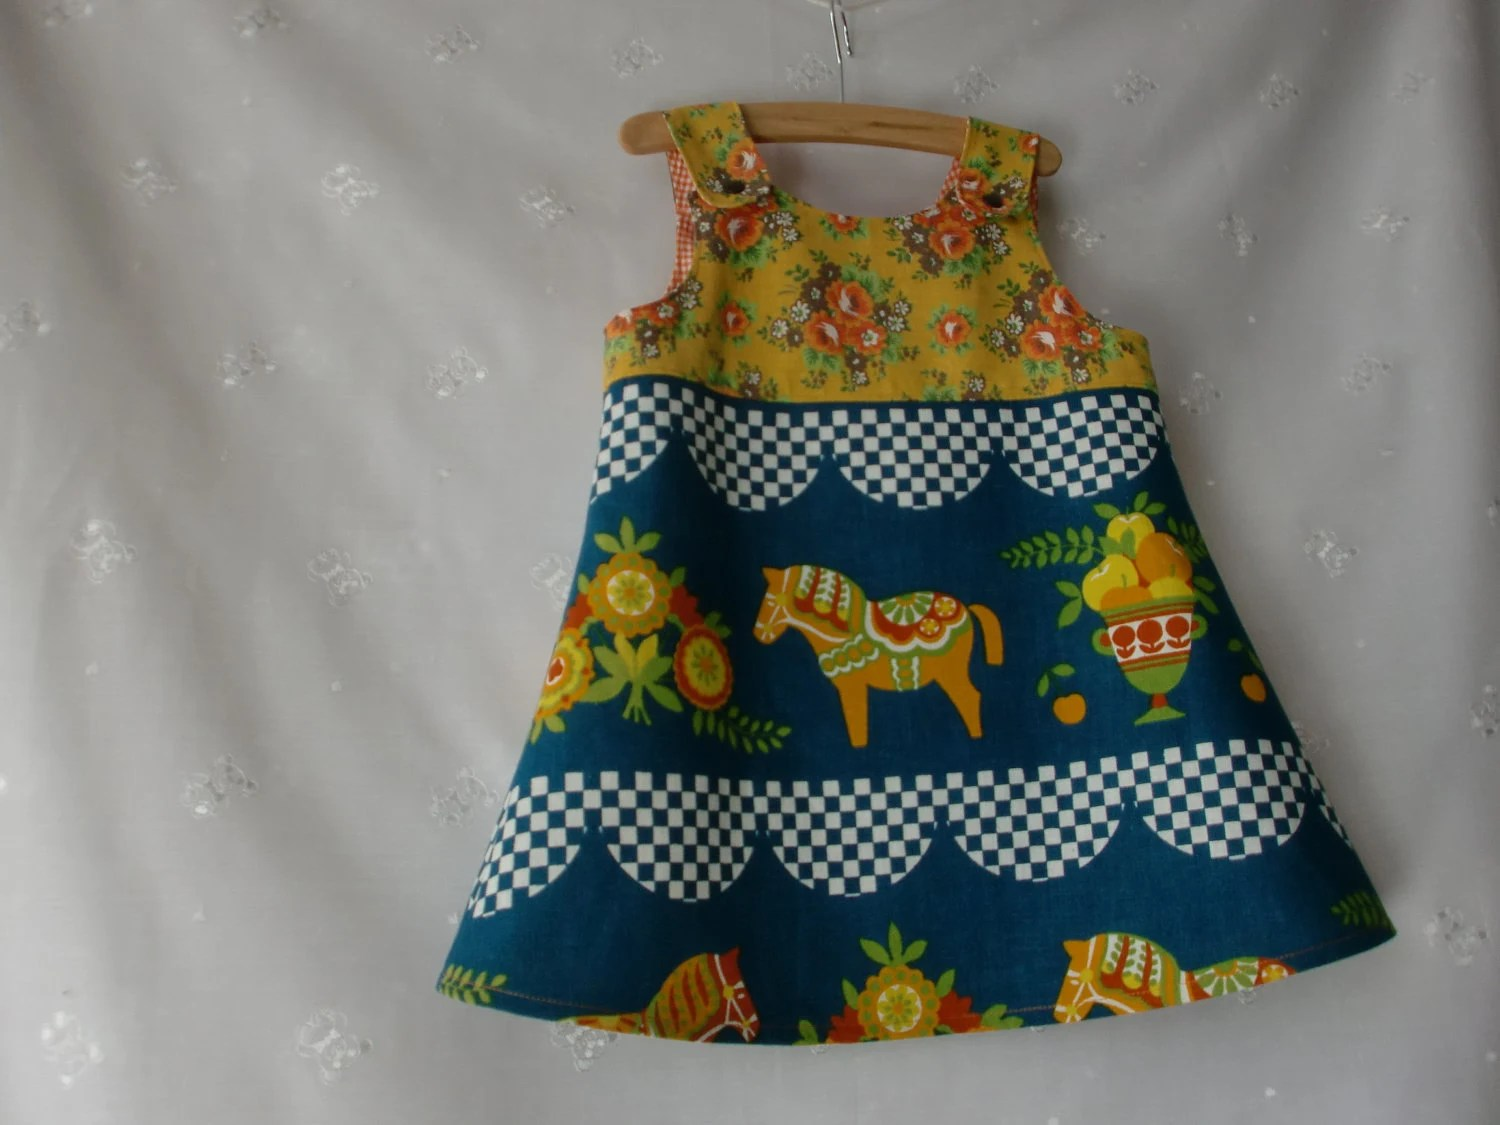 Recycled upcycled vintage fabric folkloric Dala horse dress pinafore jumper dress, boho, girl's dress, baby toddler dress 70's fabric